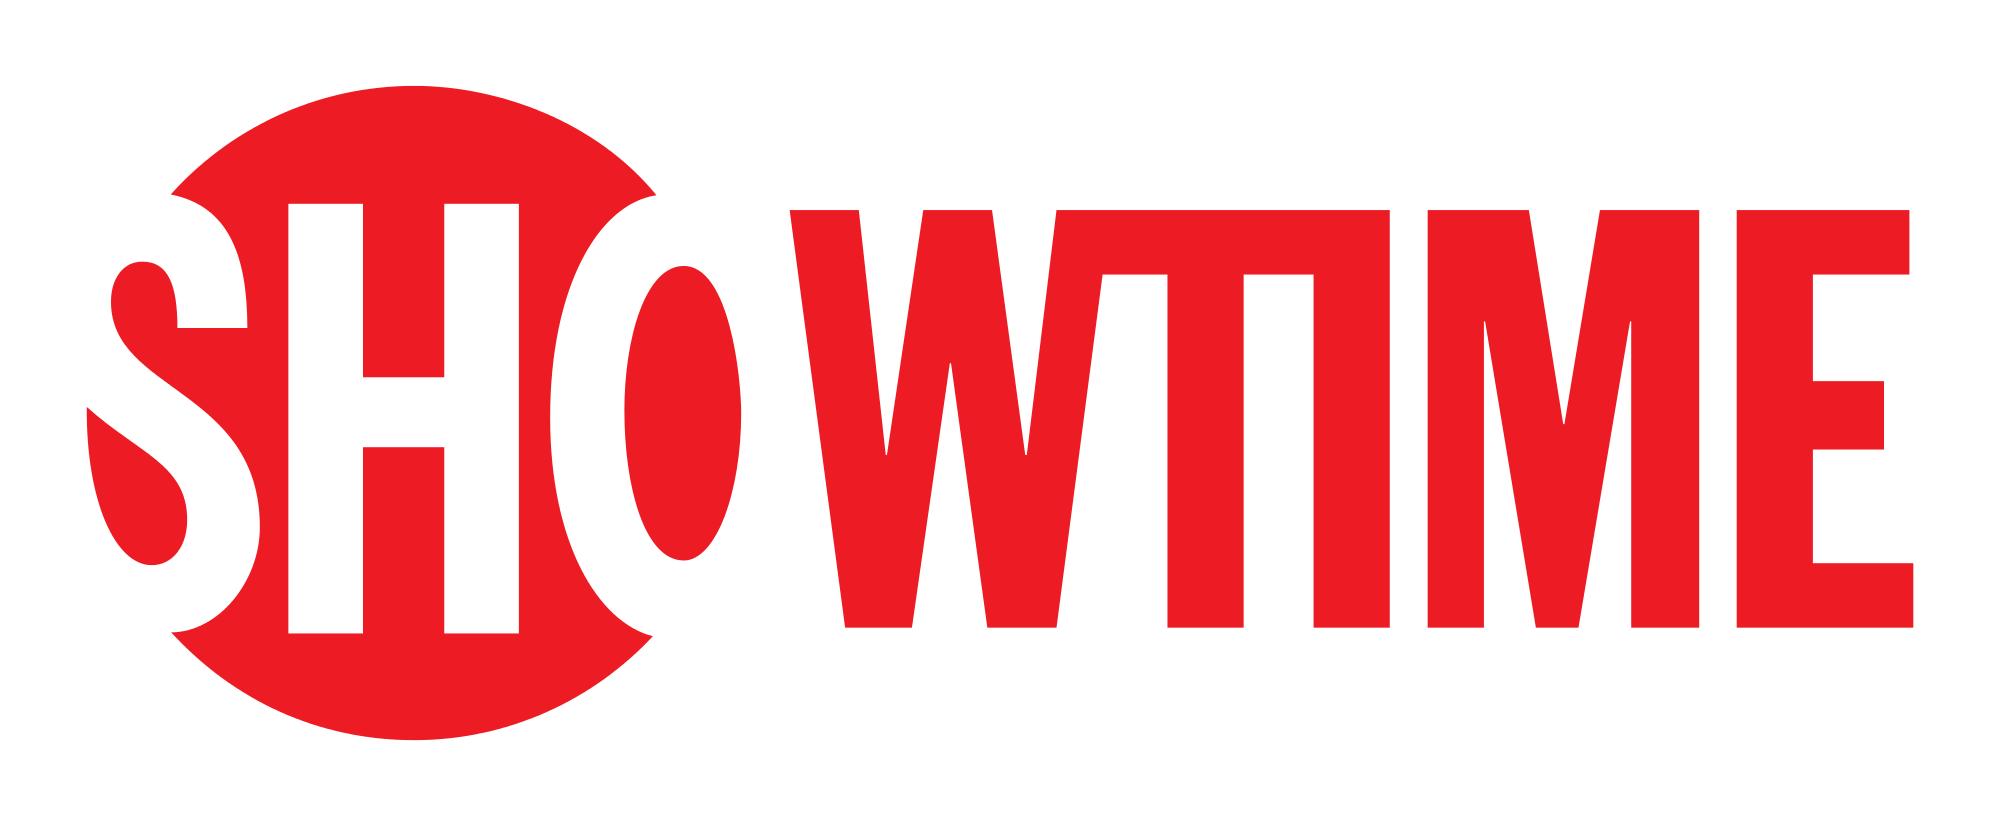 A_Showtime_logo_png.png